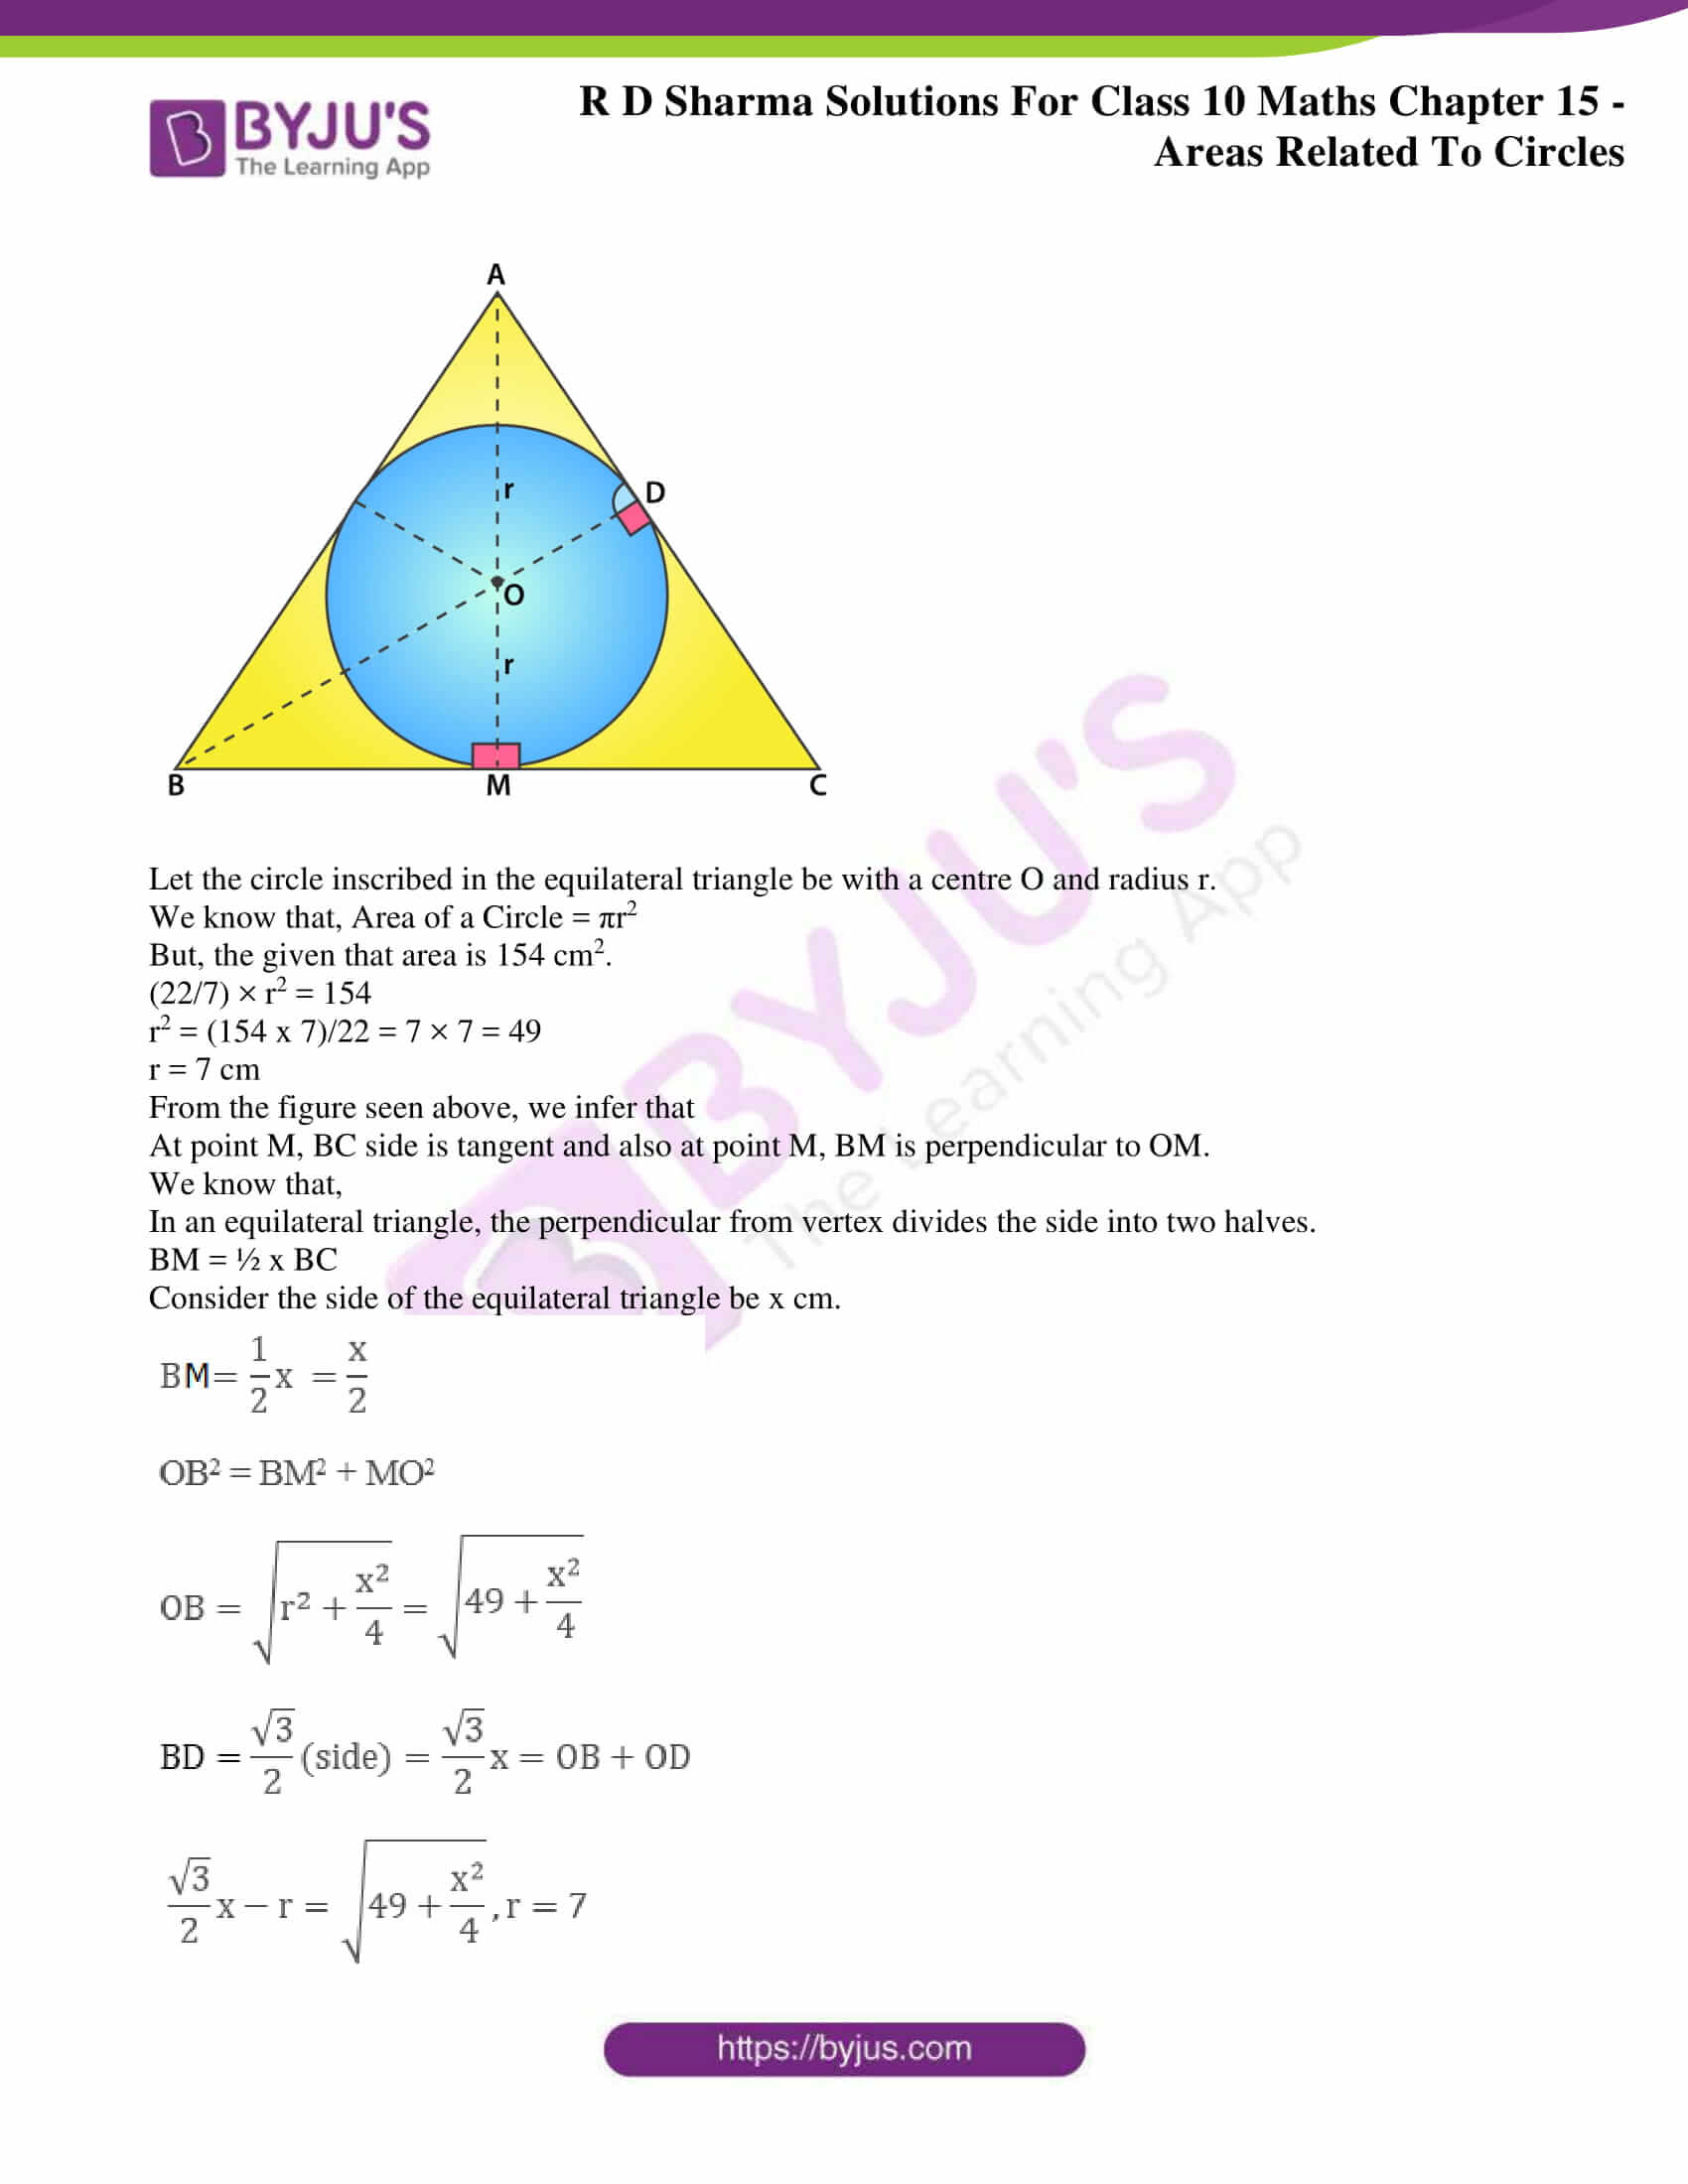 rd sharma solutions class 10 chapter 15 exercise 1